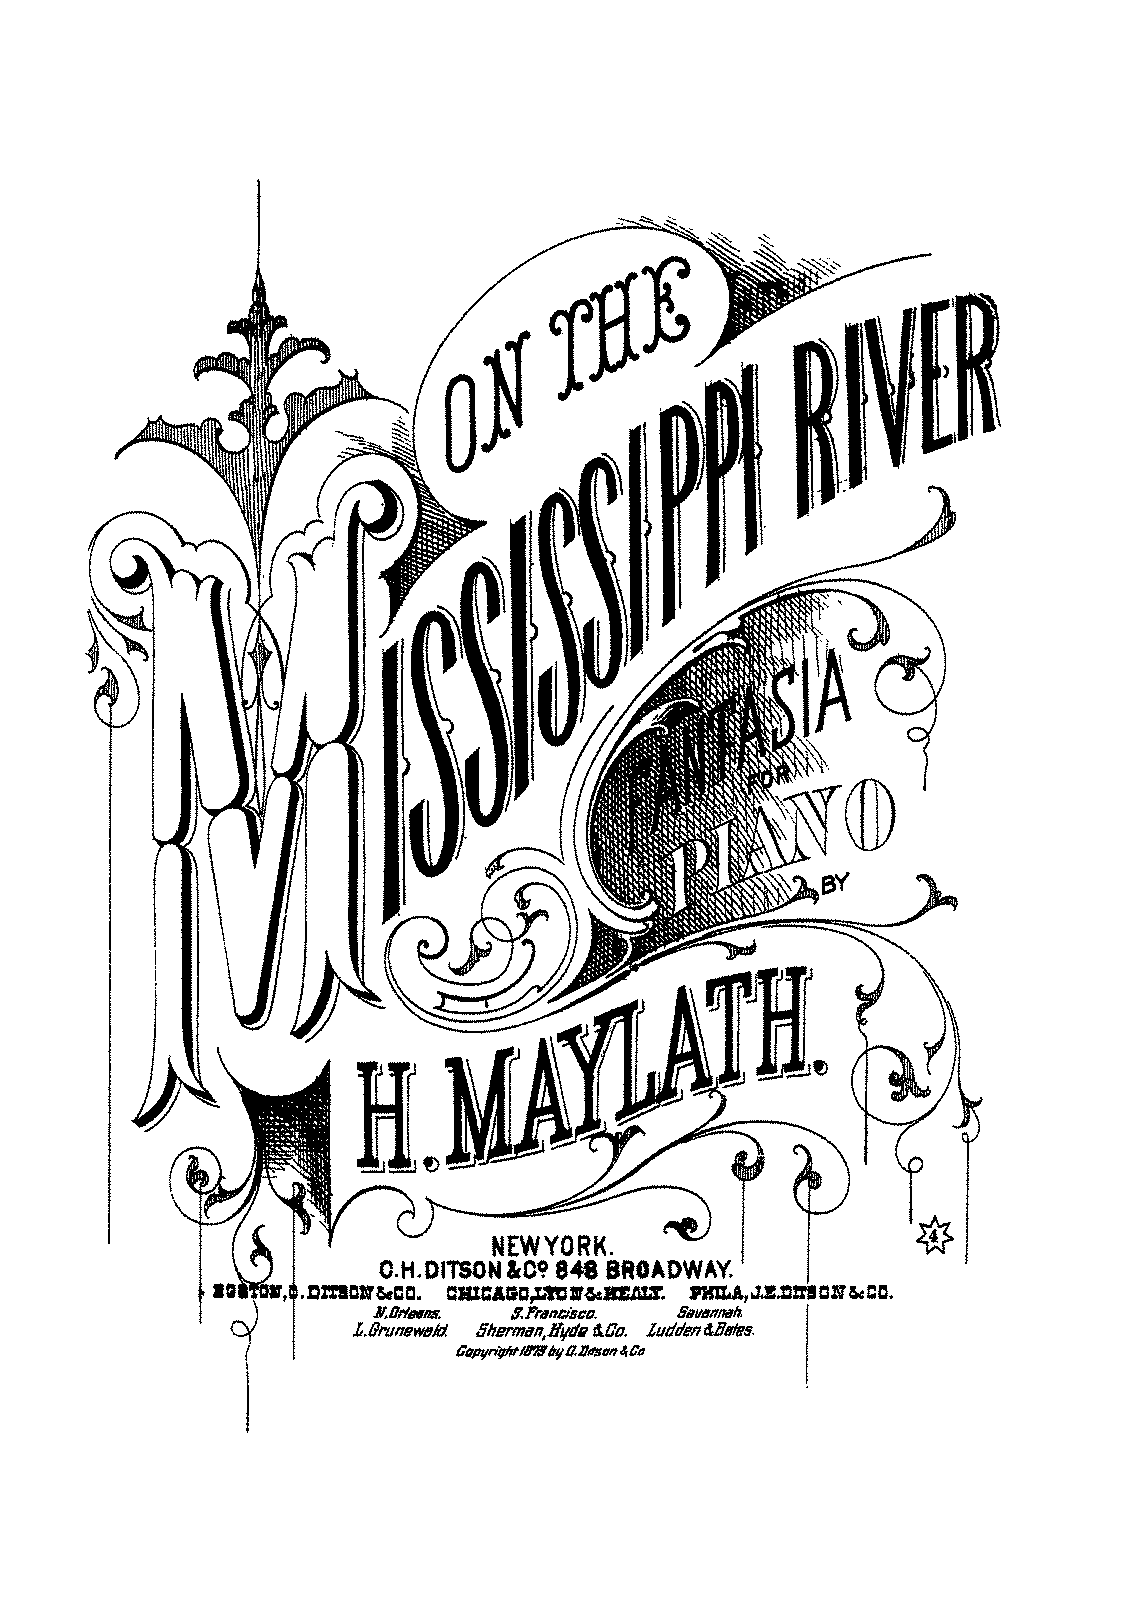 PMLP616530-Maylath - On the Missisippi River - Fantasia.pdf